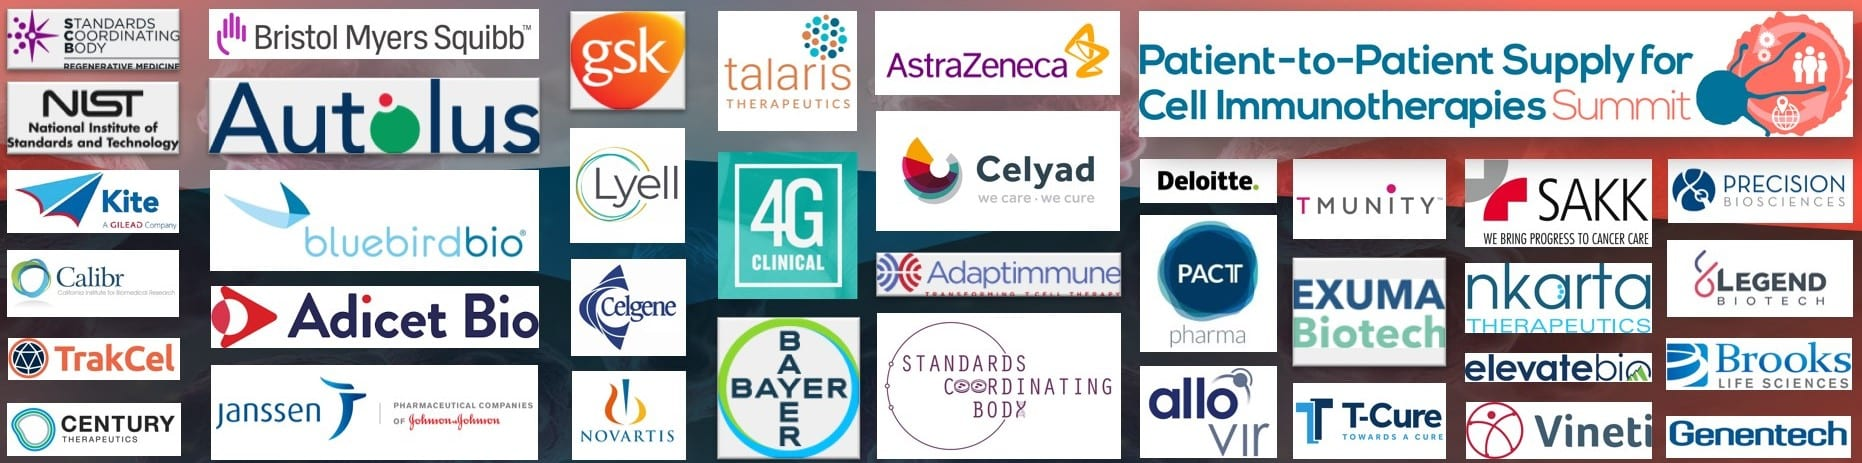 Supply for Cell Immunotherapies Summit - companies attending